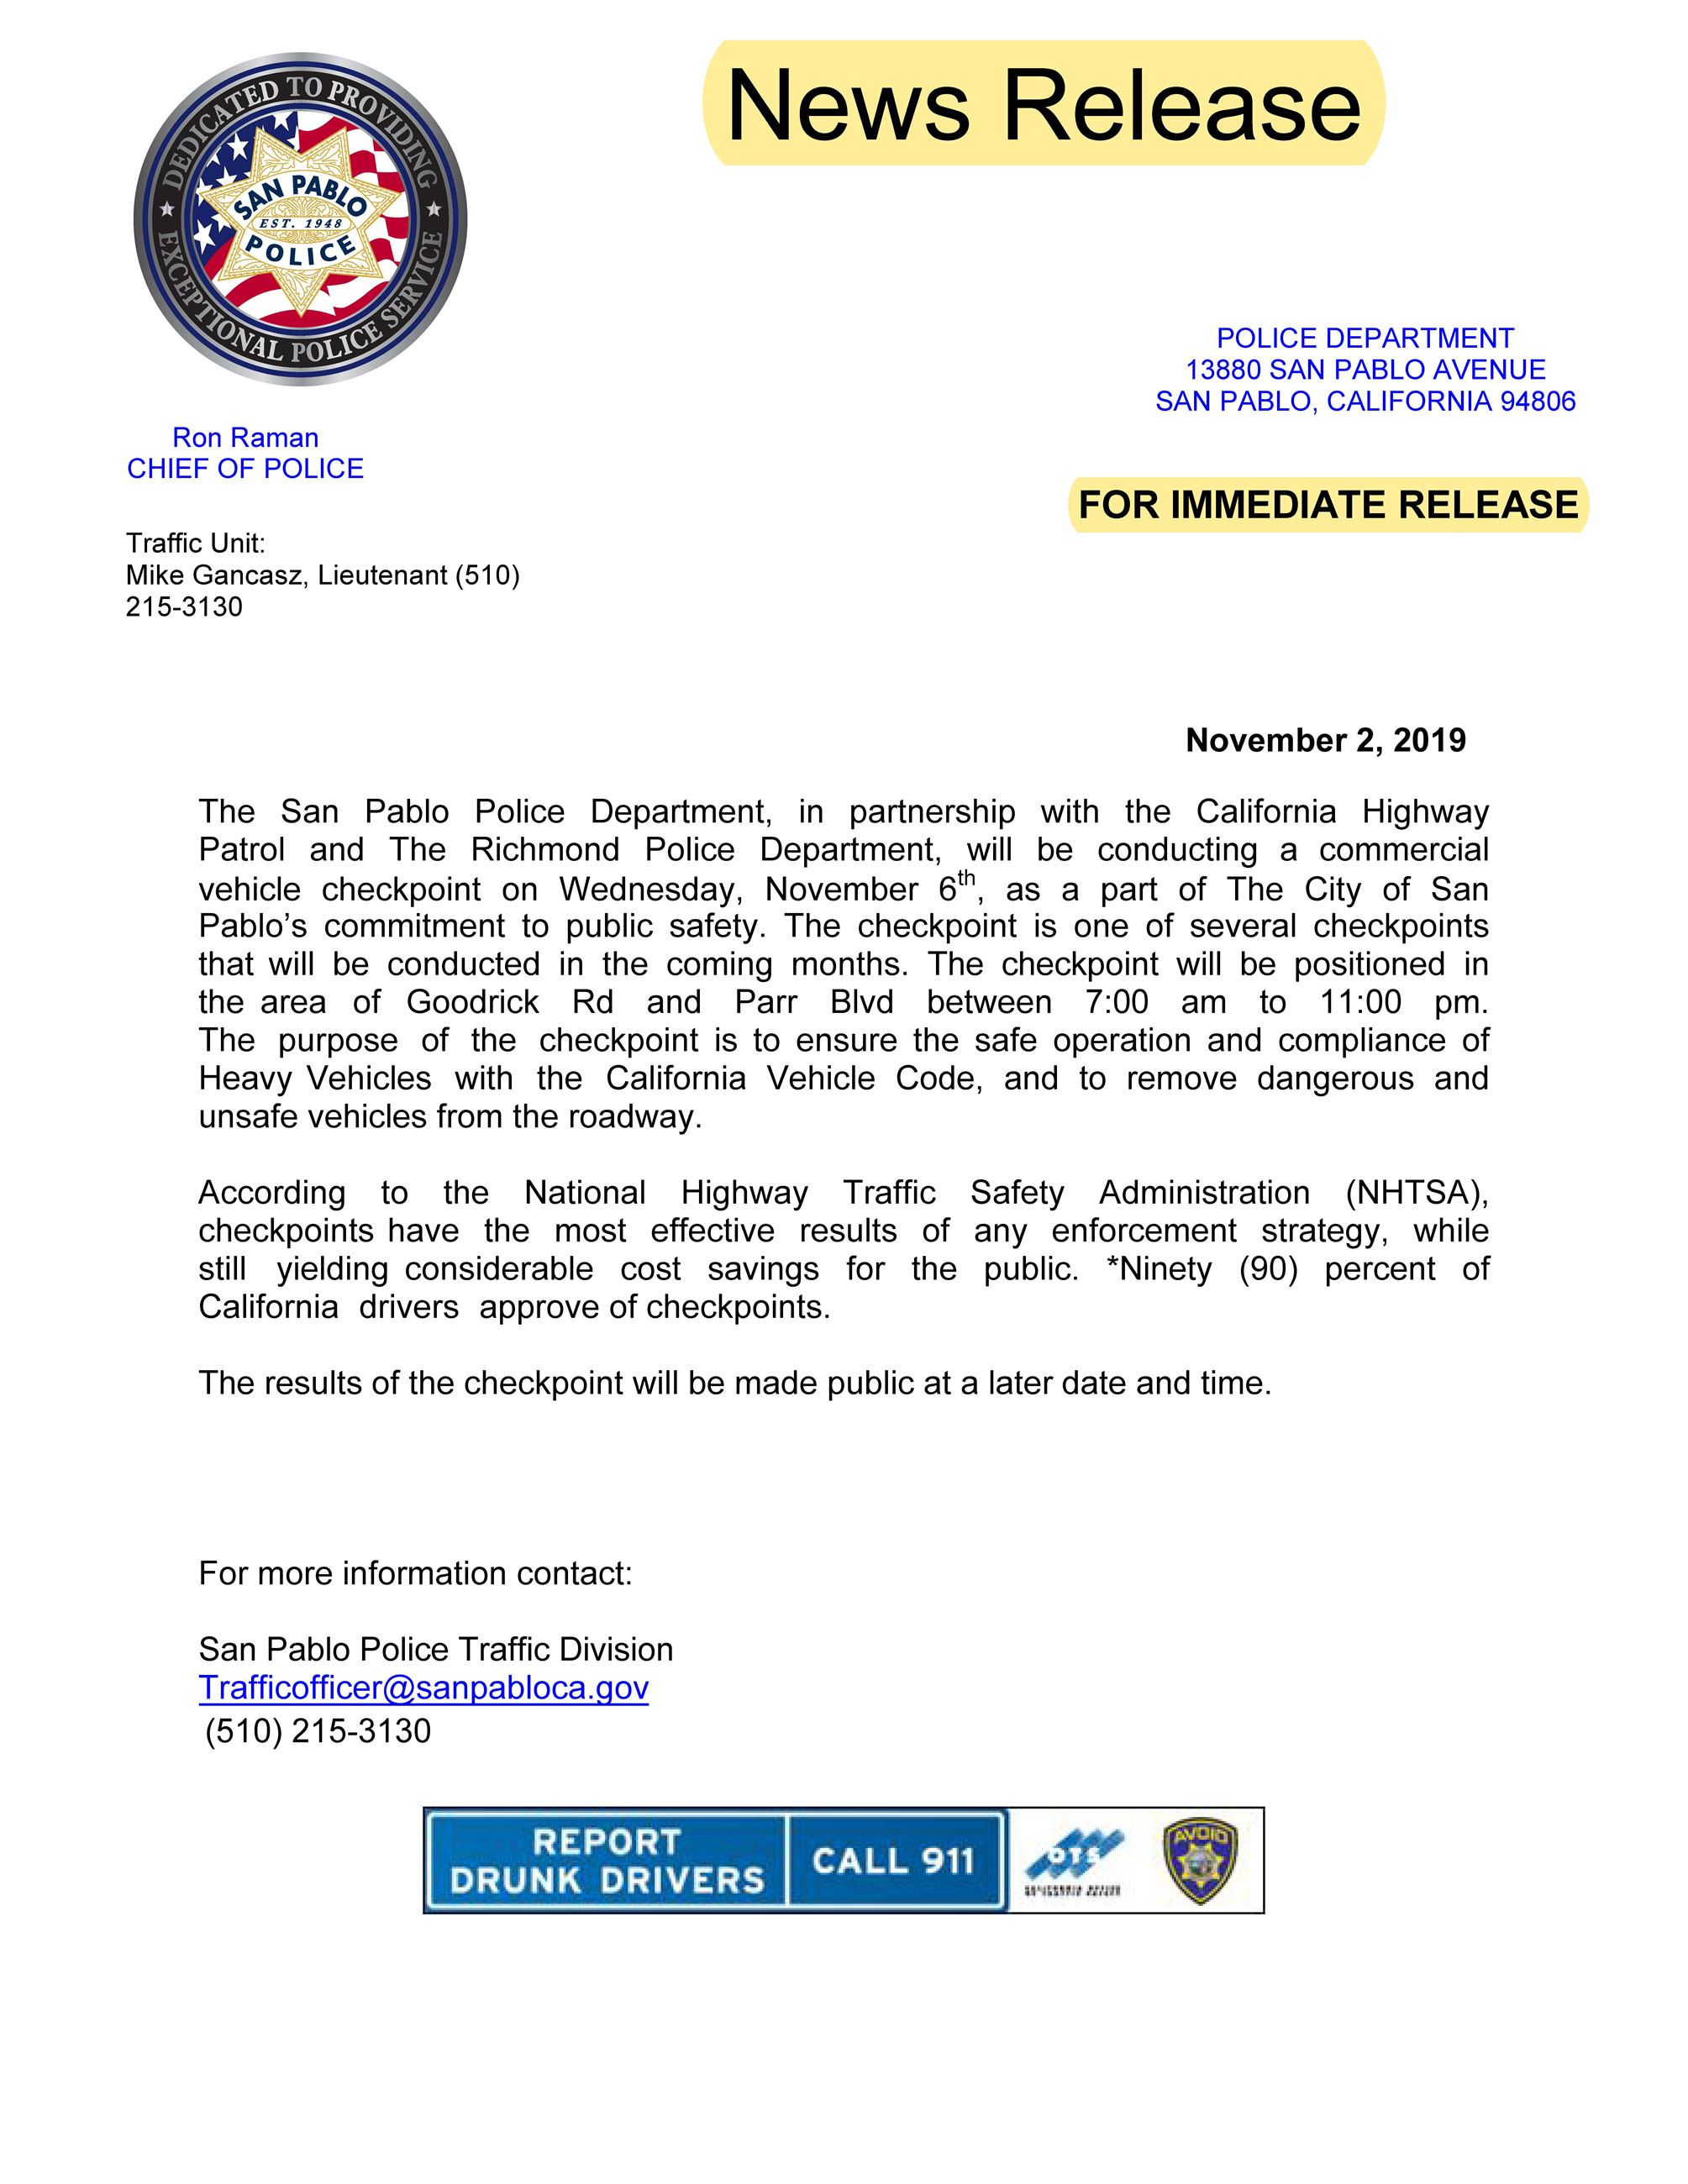 COMMERCIAL CHECKPOINT PRESS release 06Nov2019